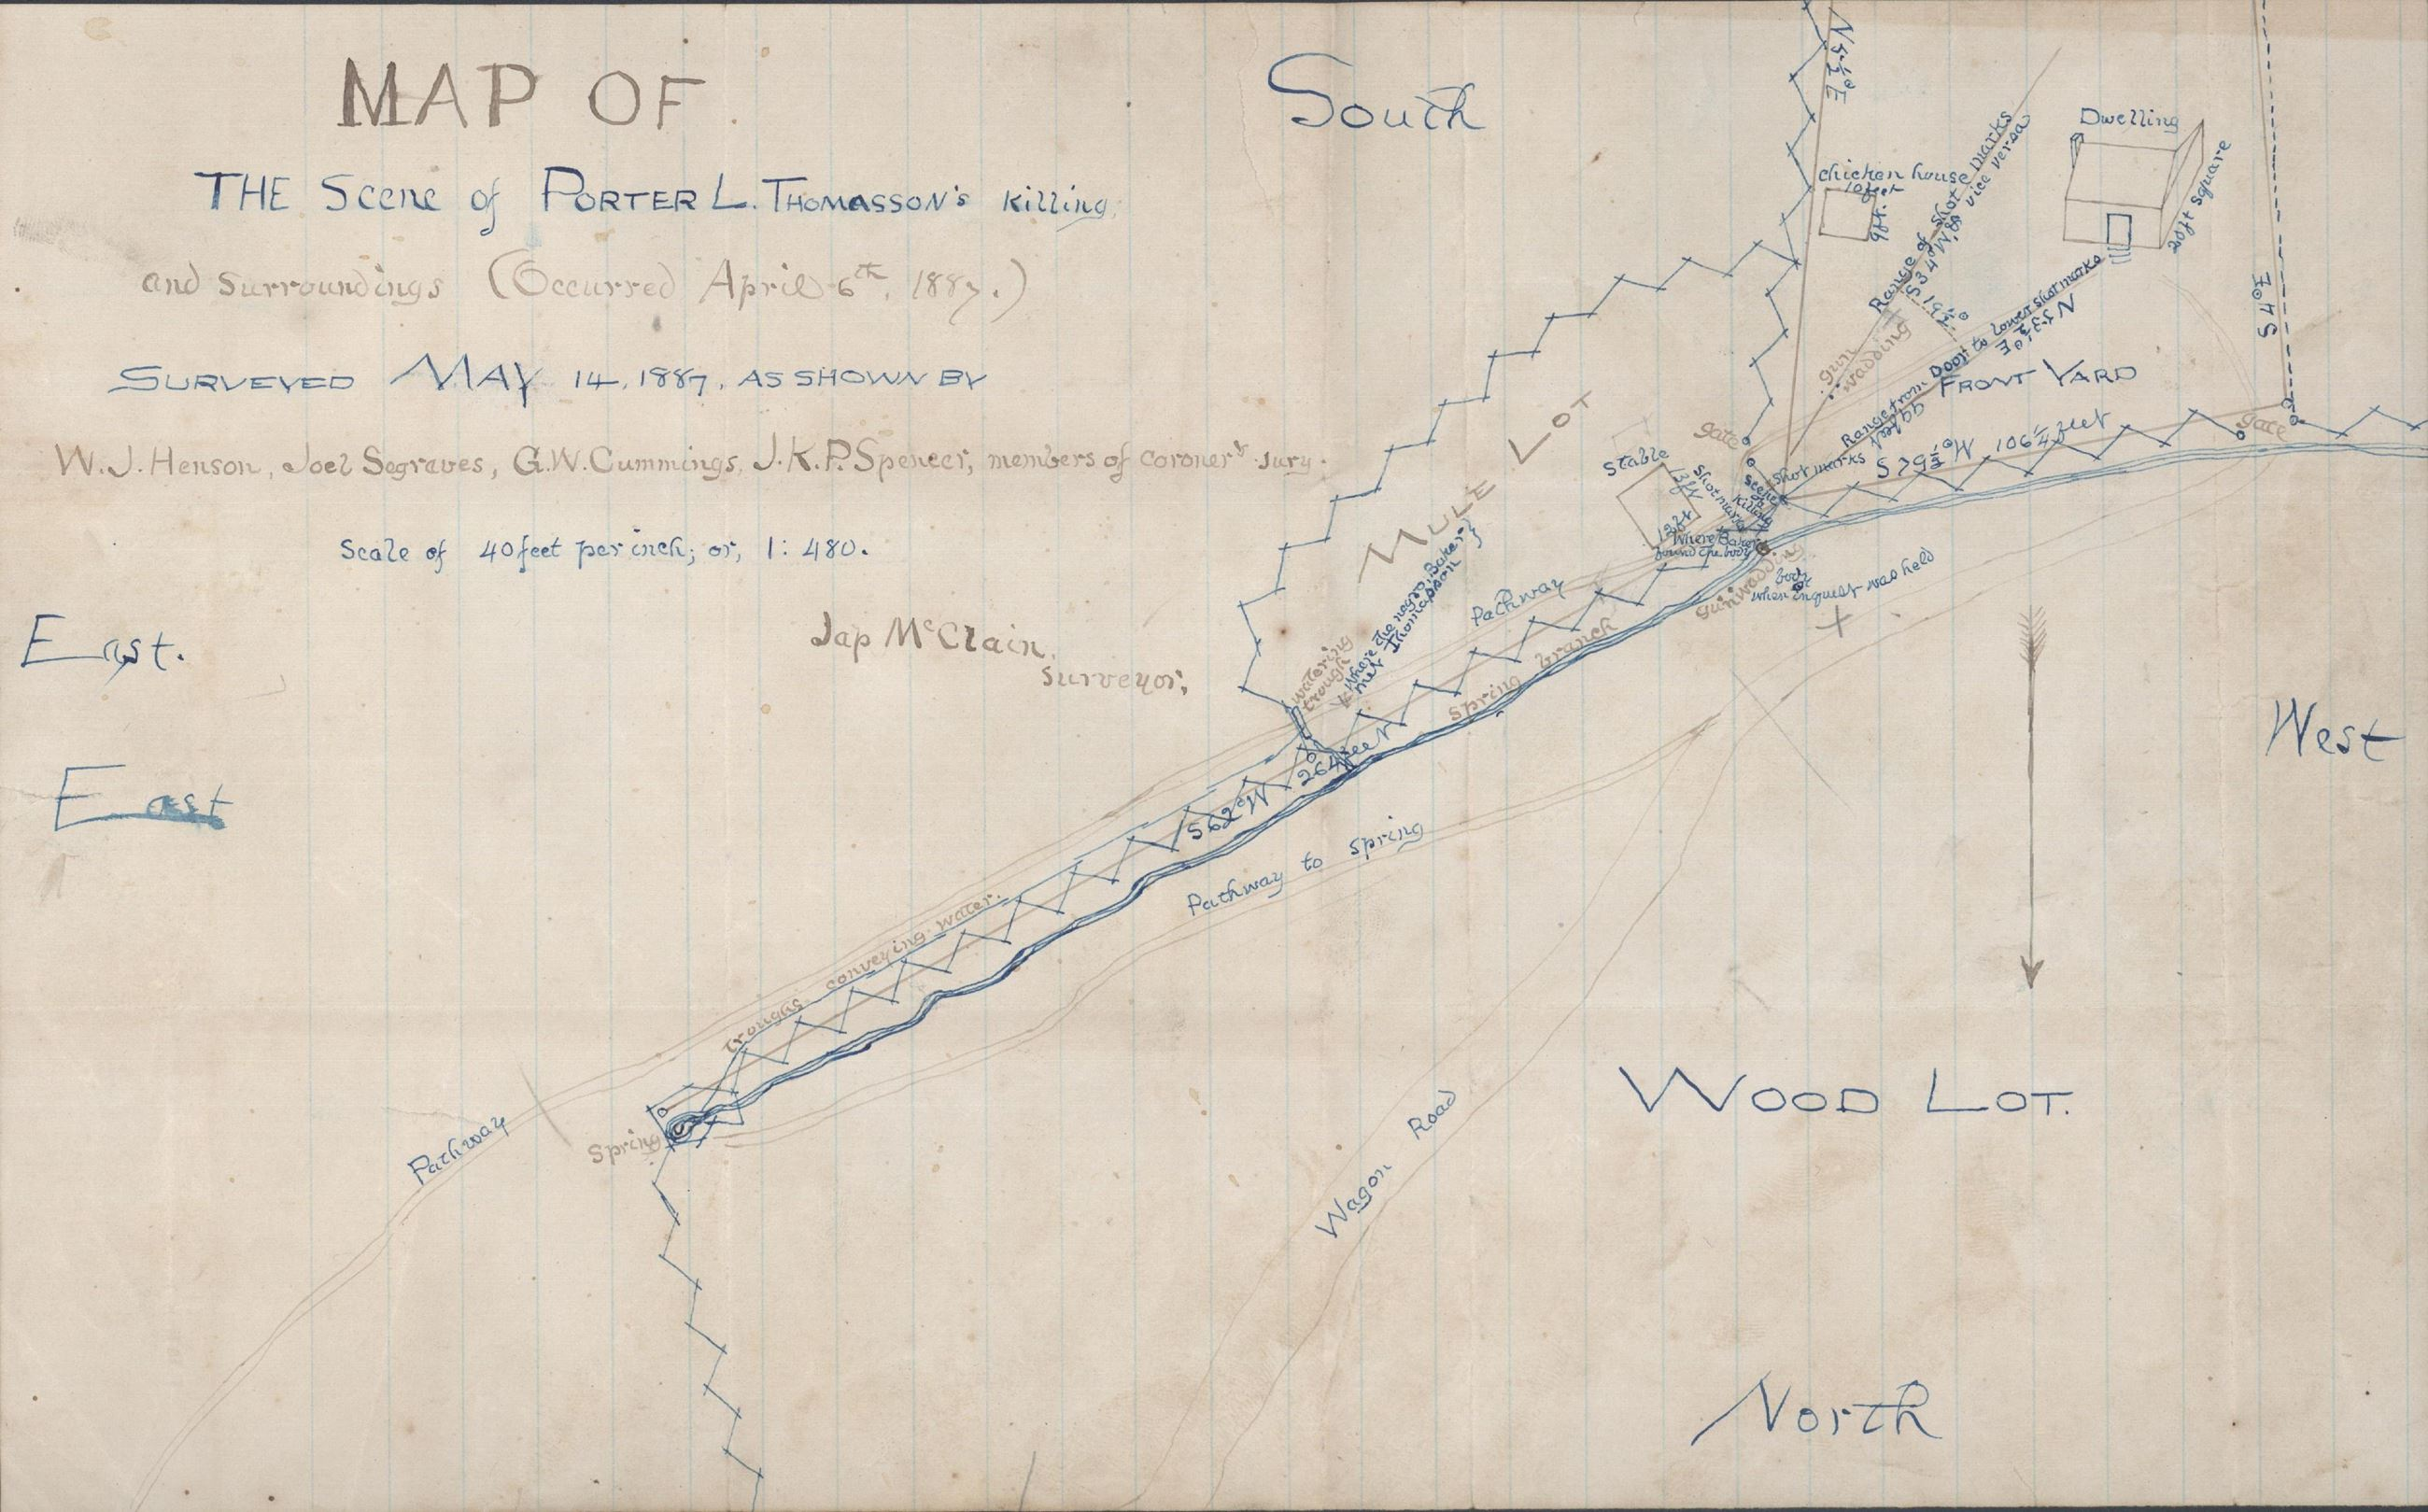 Map of Porter L. Thomasson Murder